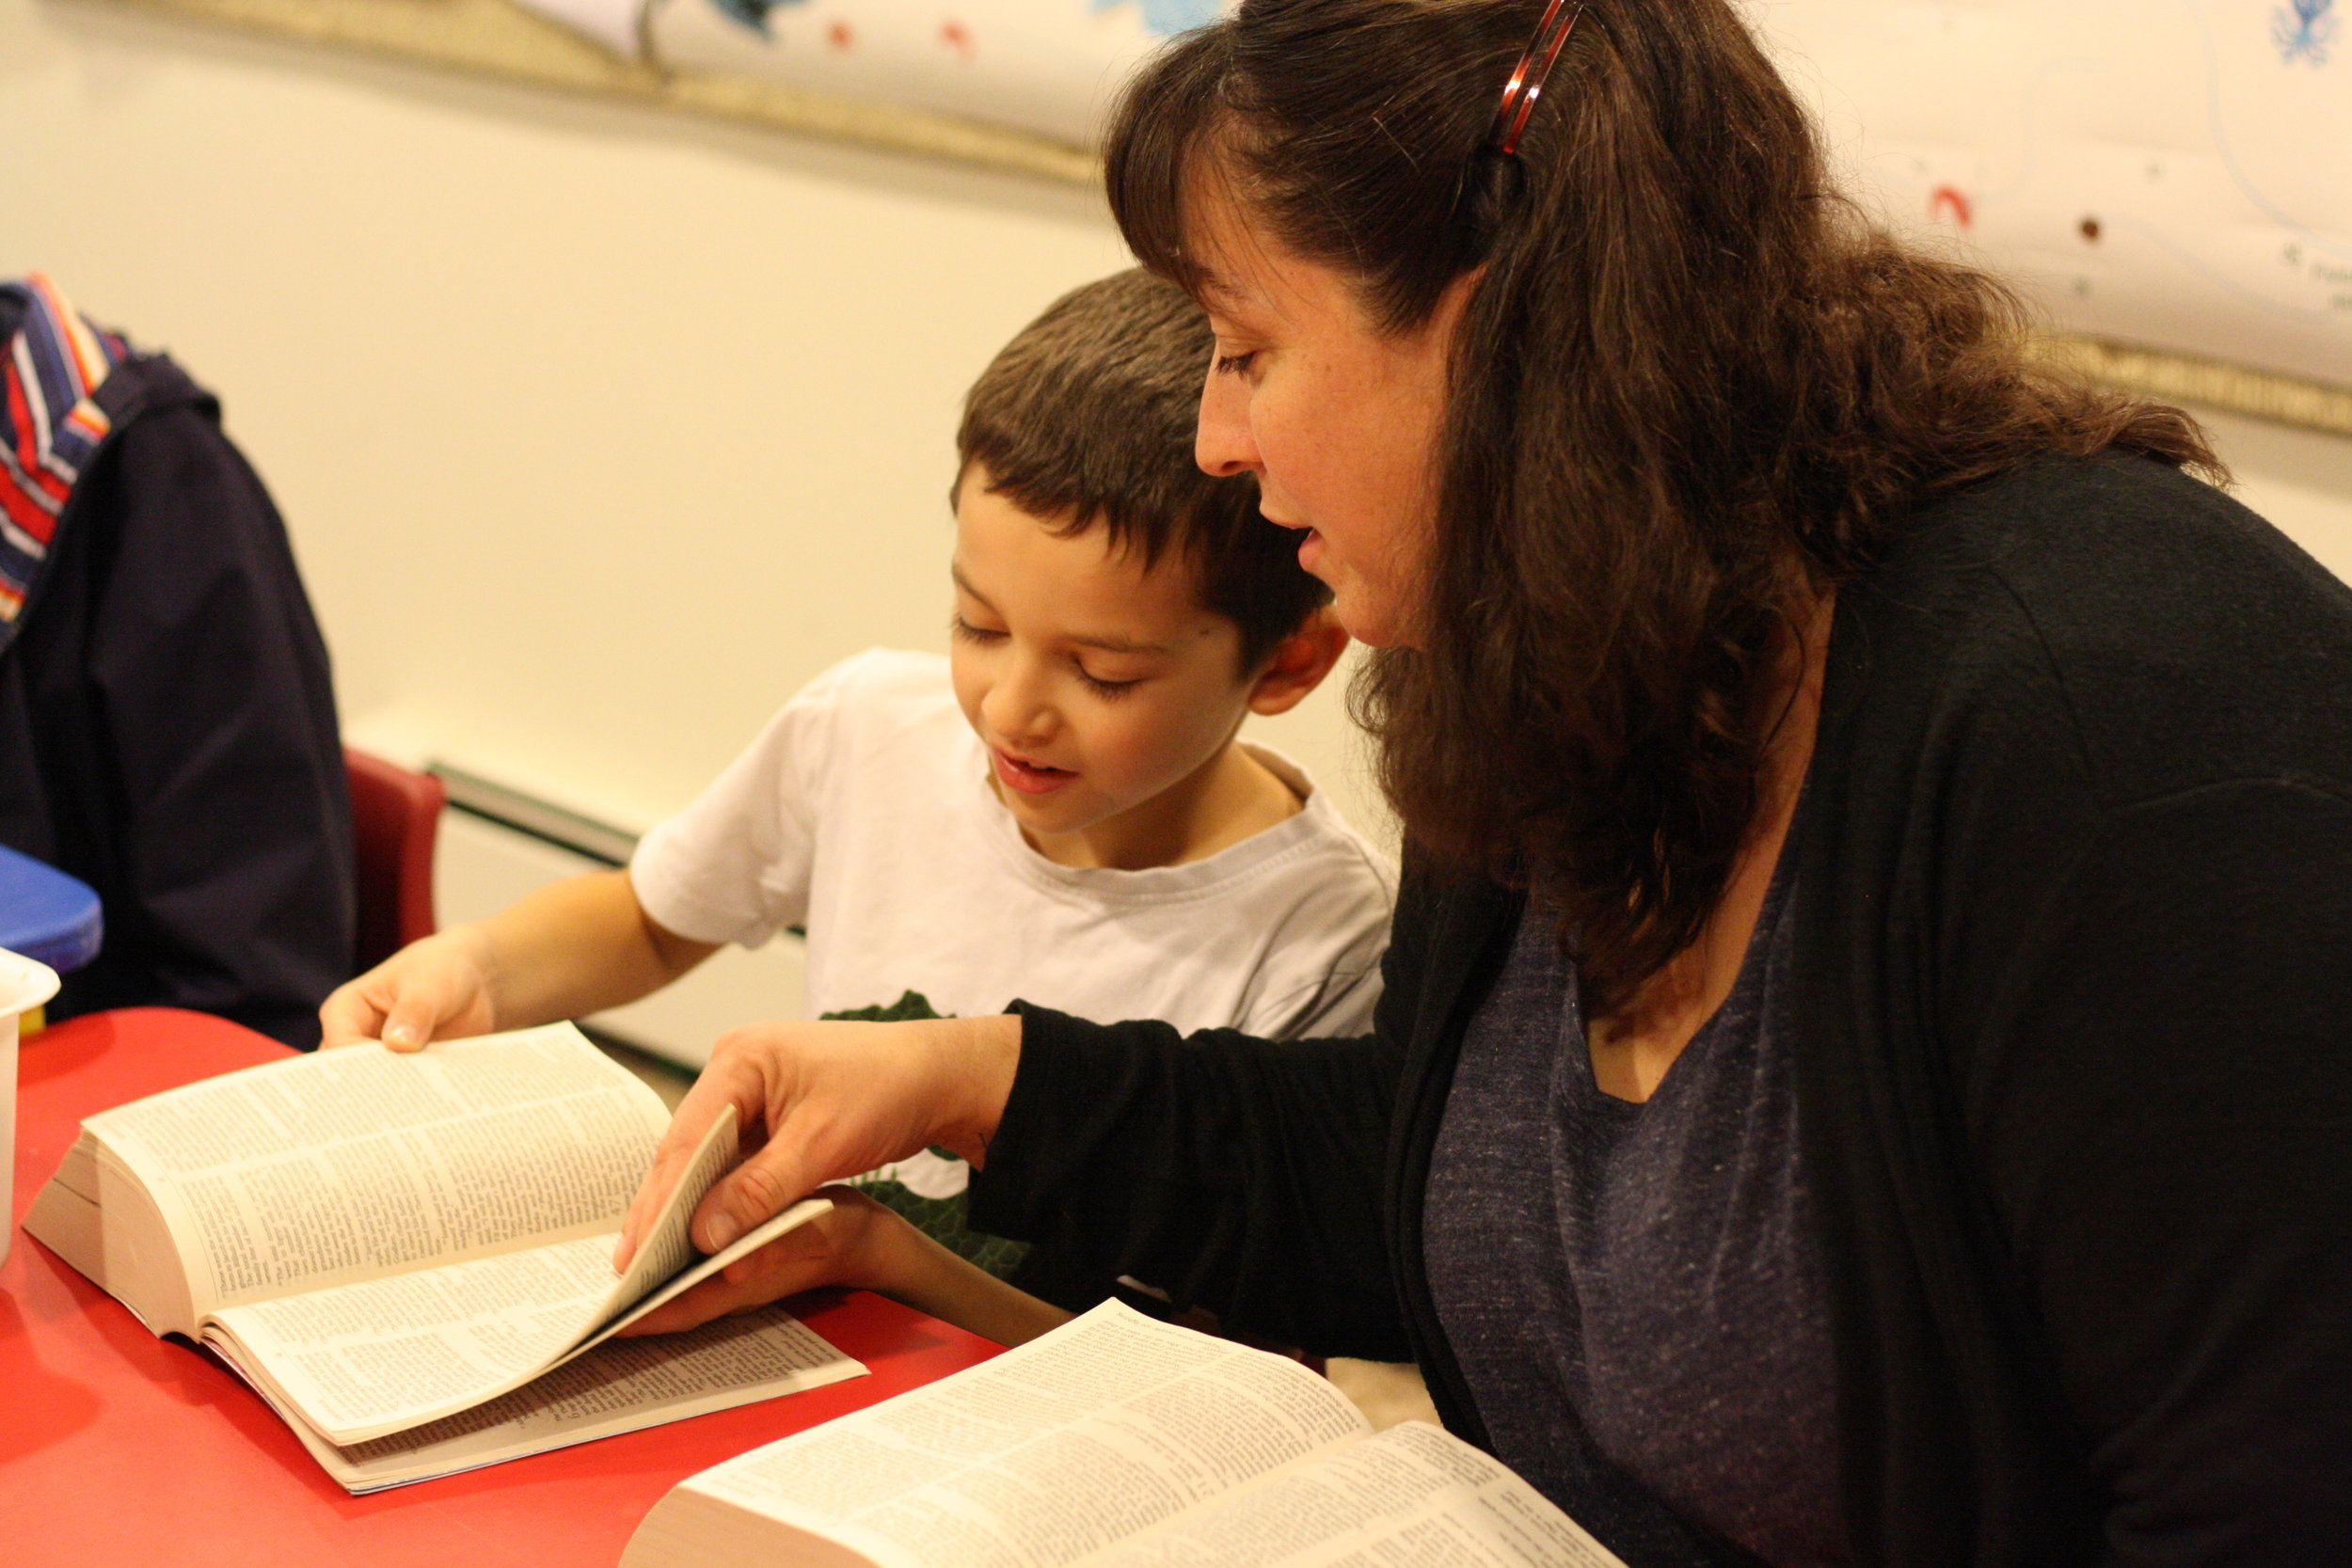 Teacher assists student to find Bible passage